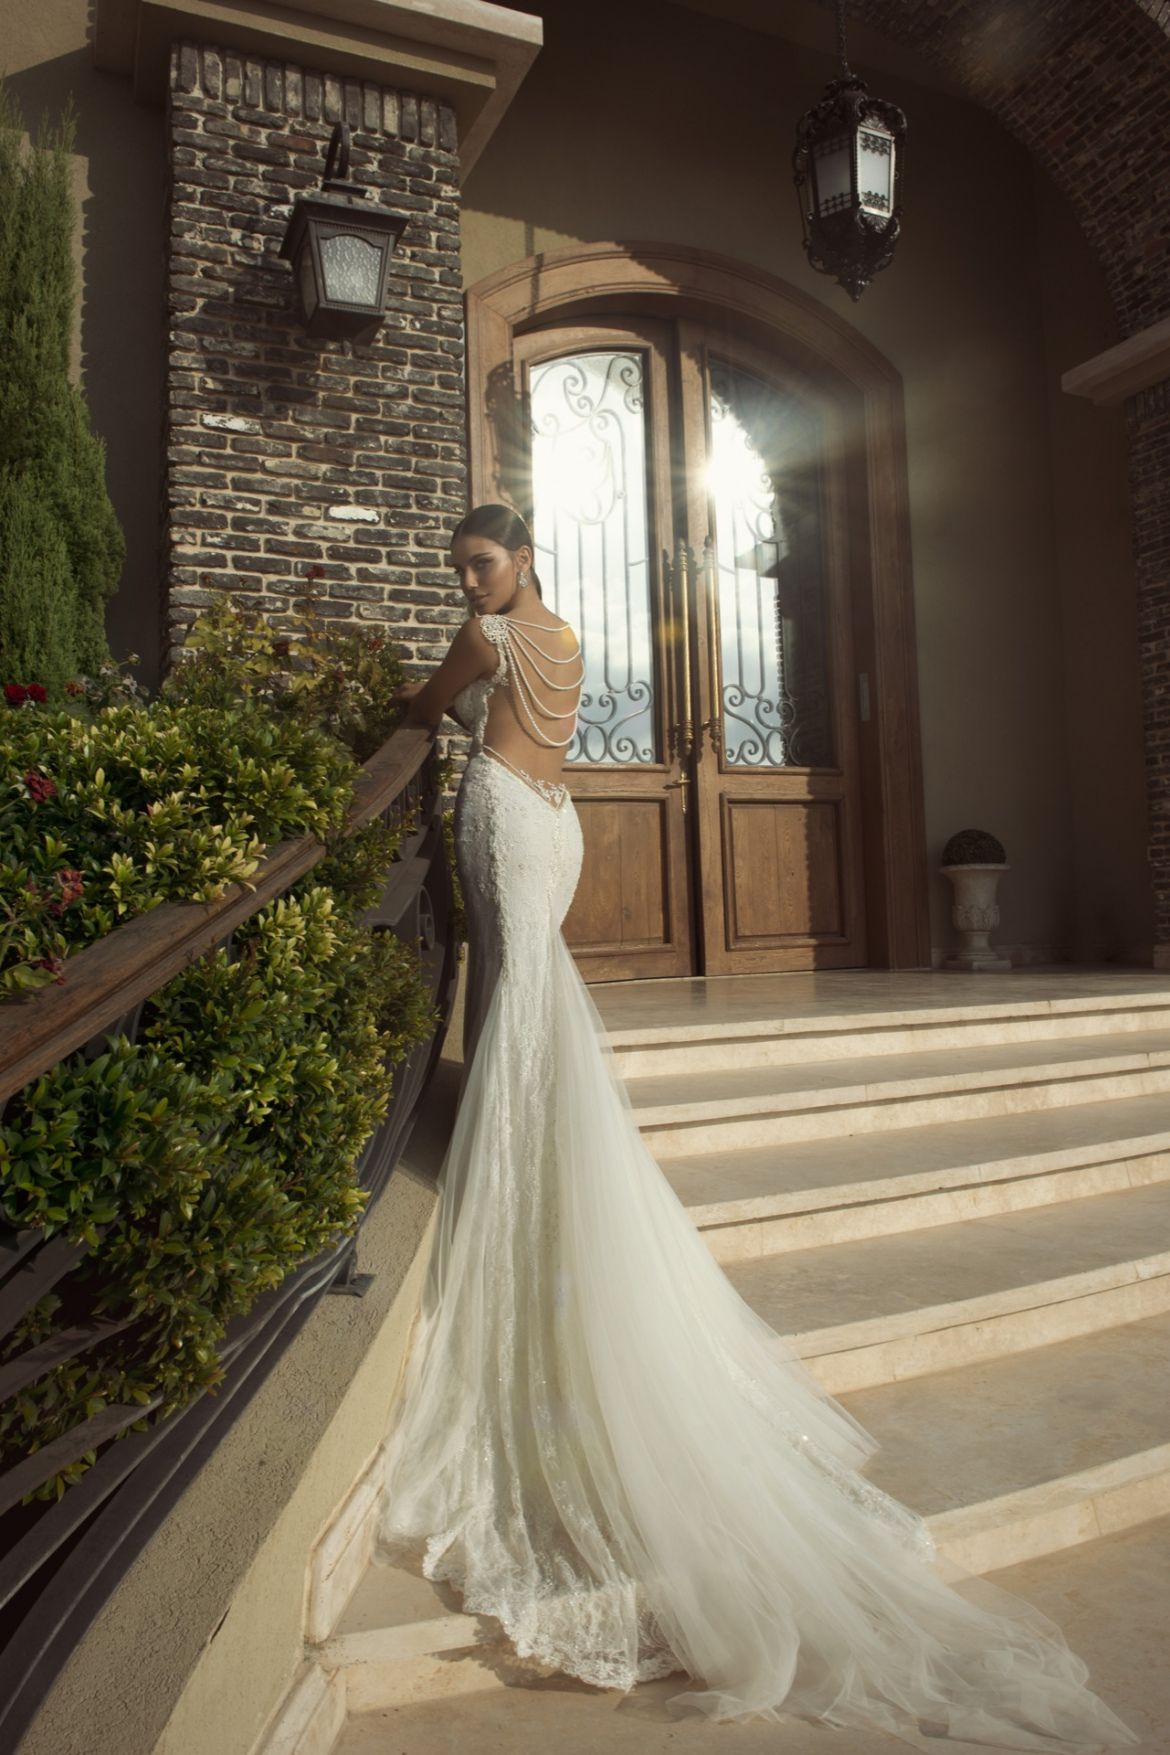 50 Galia Lahav Wedding Dresses Prices For Reception Check More At Http